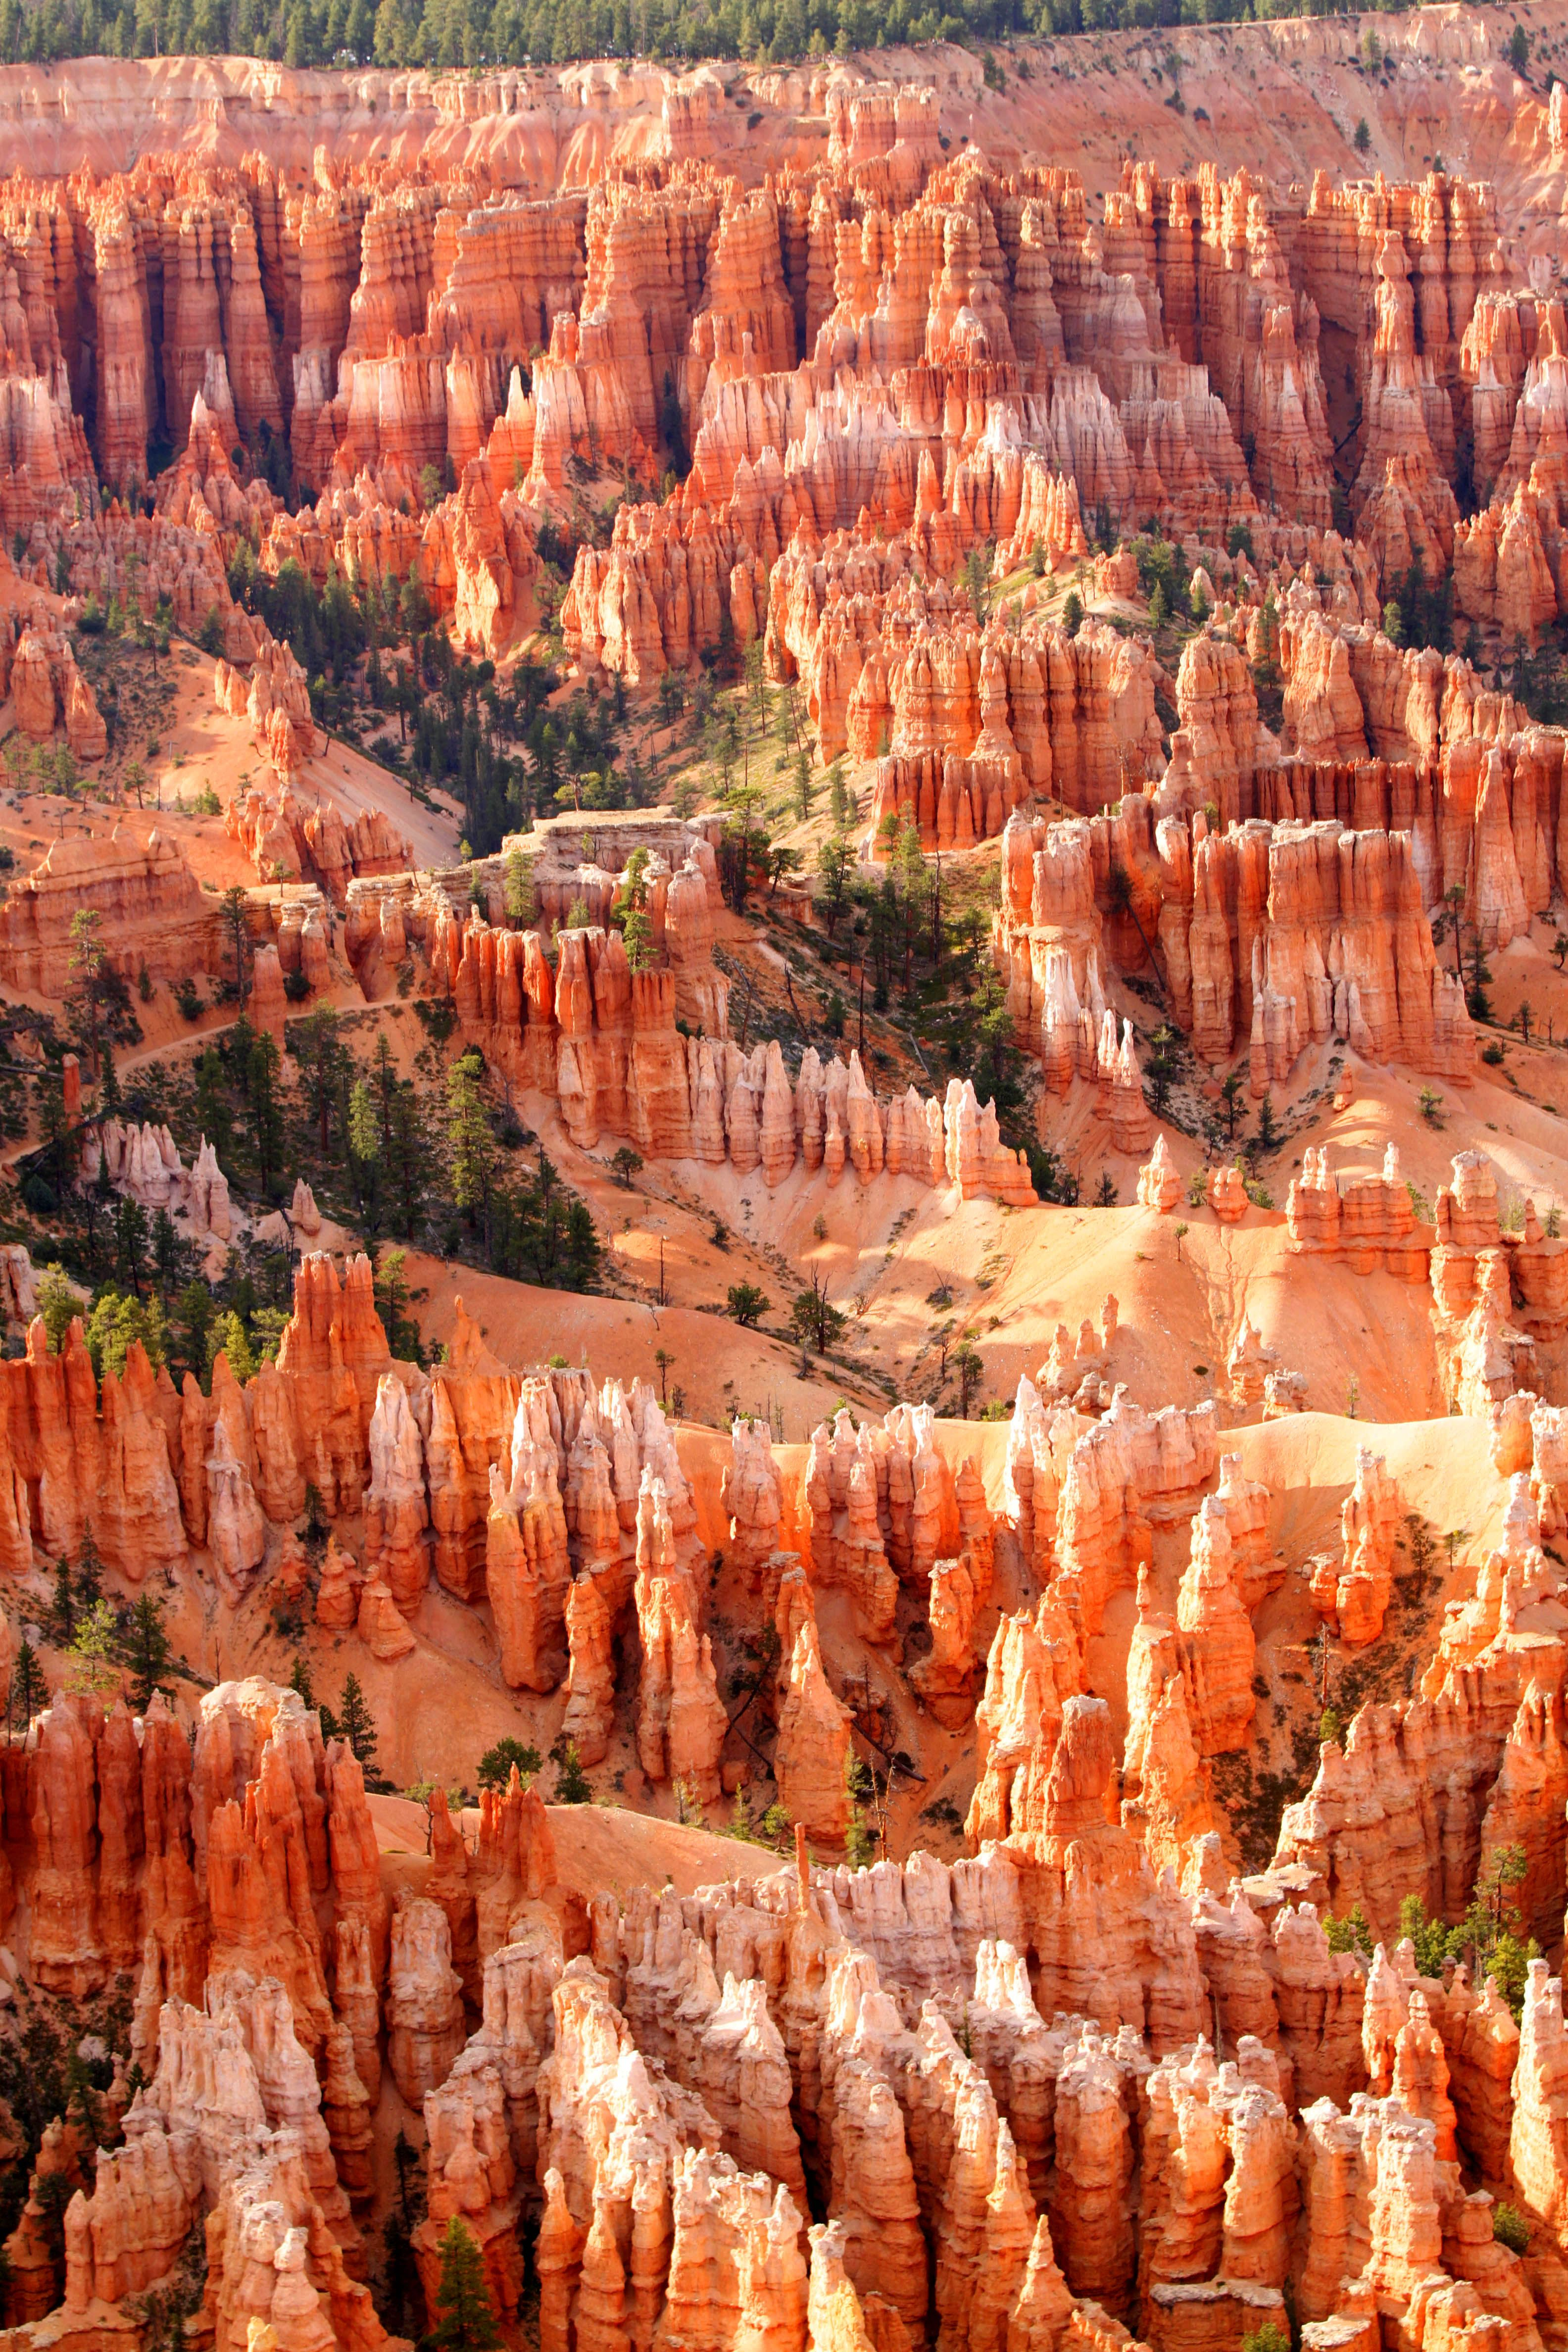 Bryce Canyon, Utah  I love this place, its so colorful & the rock formations are CRAZY! I just love Utah & Arizona, they have so many red rocks & canyons....